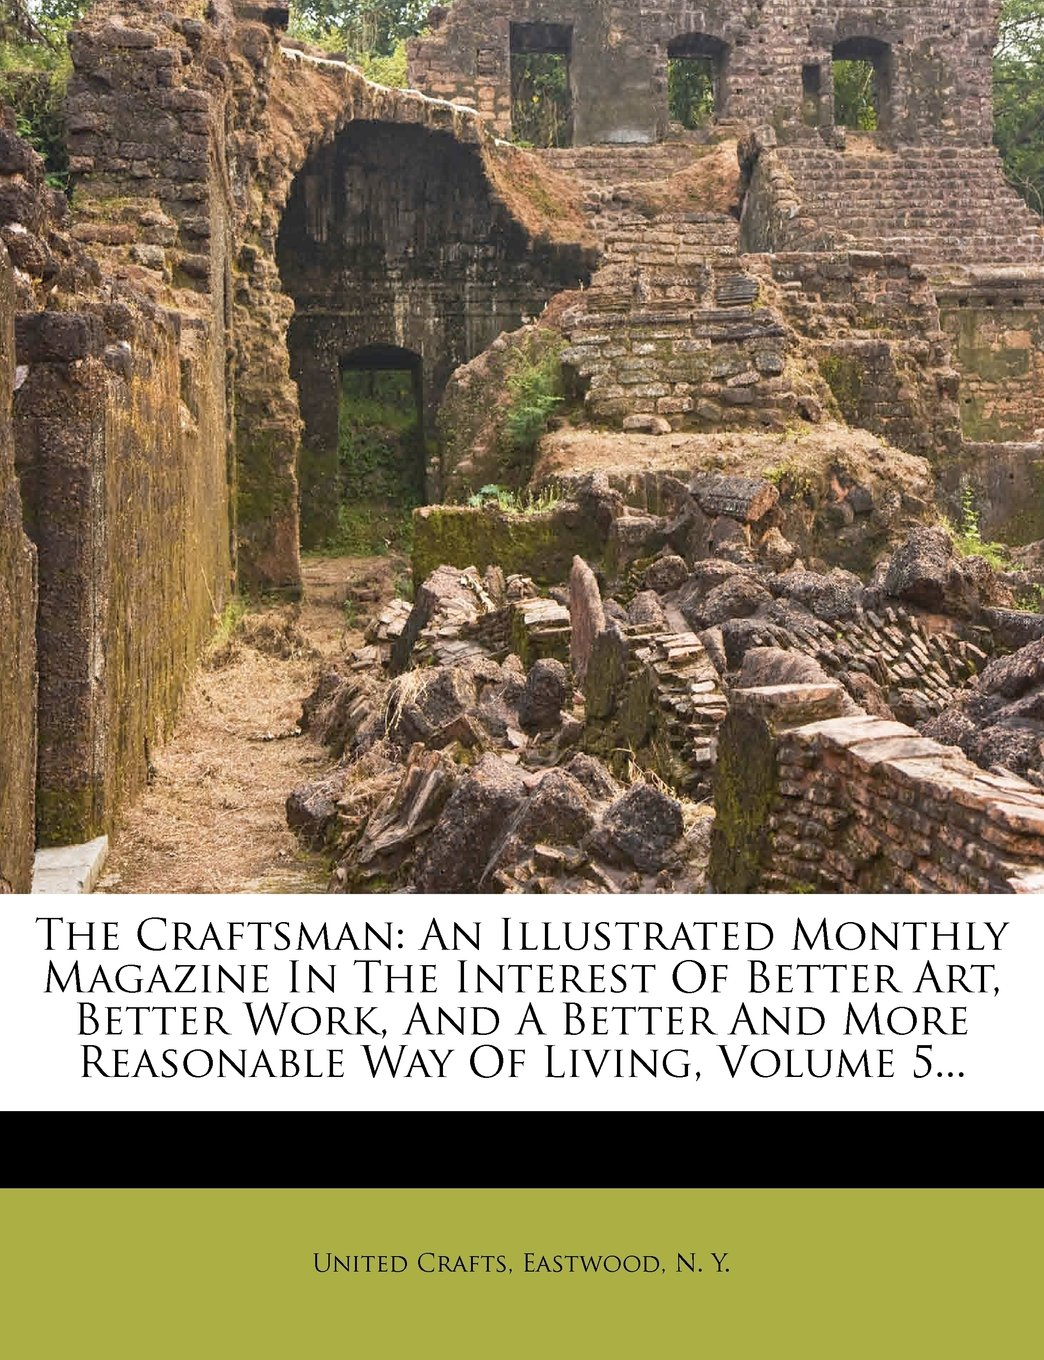 Download The Craftsman: An Illustrated Monthly Magazine In The Interest Of Better Art, Better Work, And A Better And More Reasonable Way Of Living, Volume 5... pdf epub